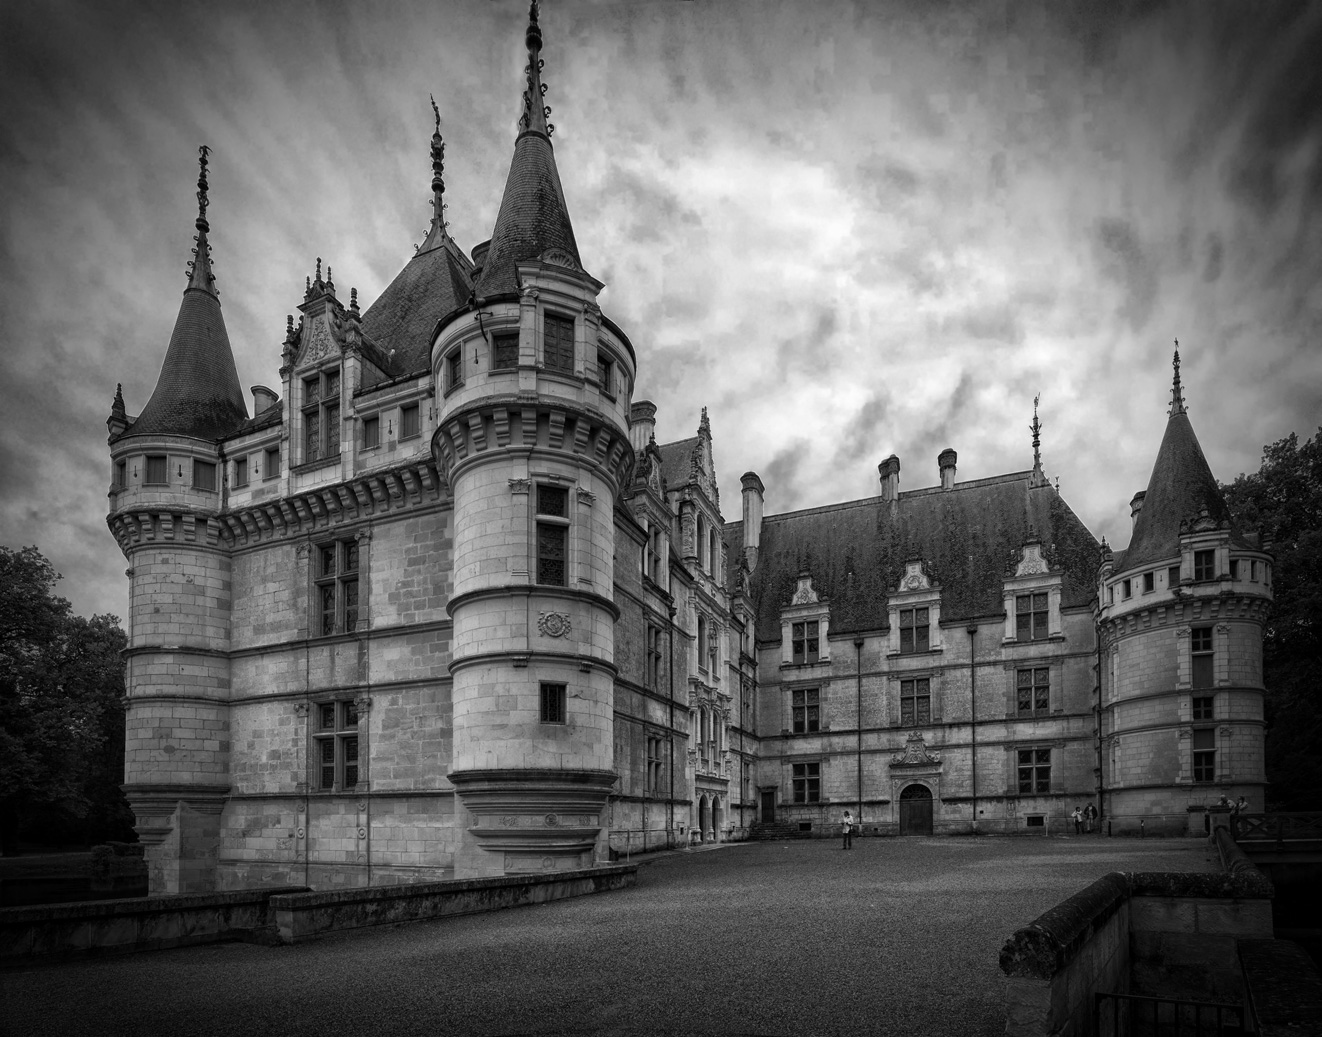 chateau d'Azay-le-Rideau by rhipster